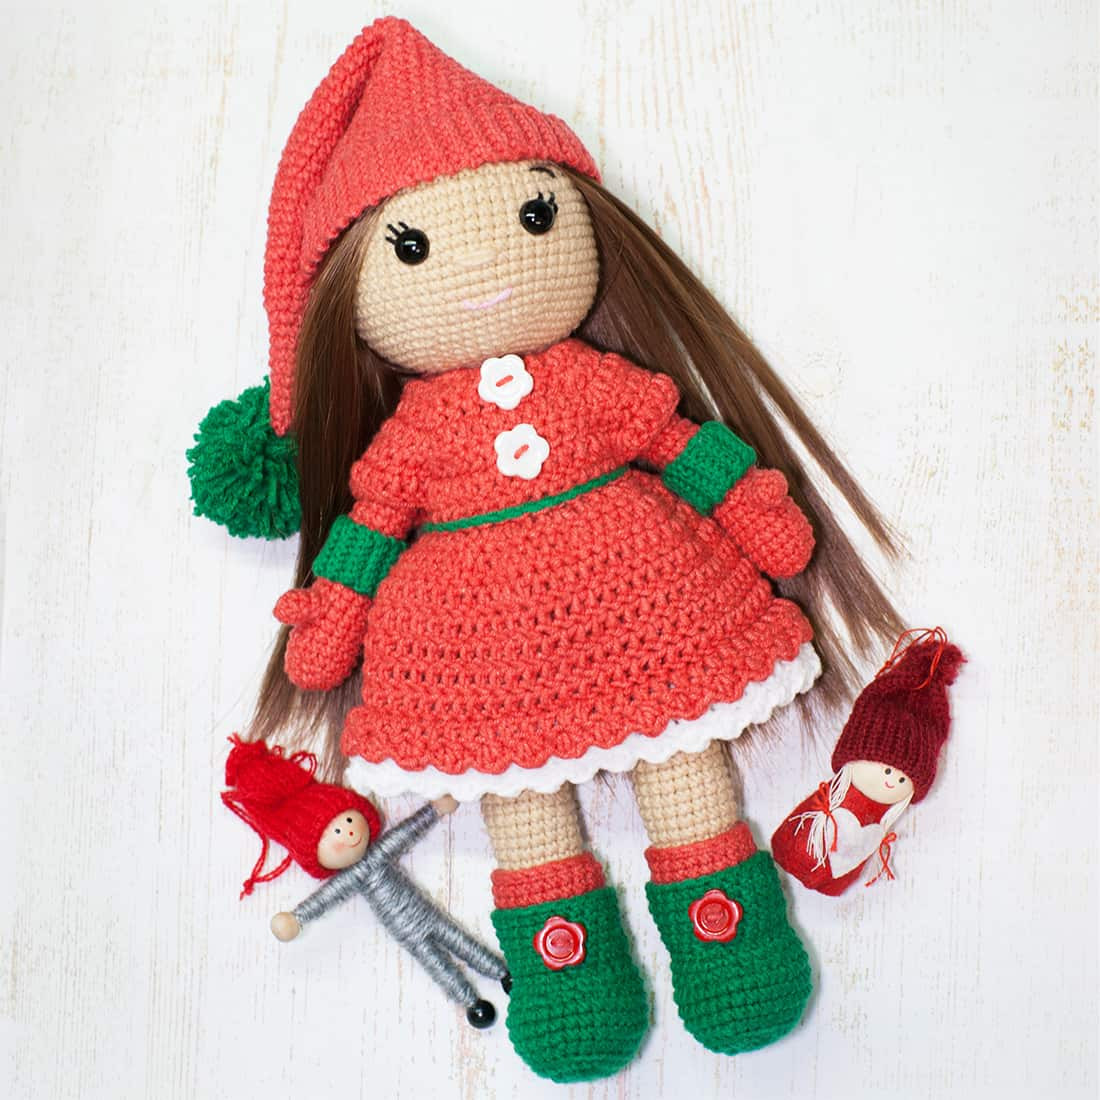 Doll Patterns New Christmas Doll Crochet Pattern Amigurumi today Of Doll Patterns Fresh Spirit Dolls